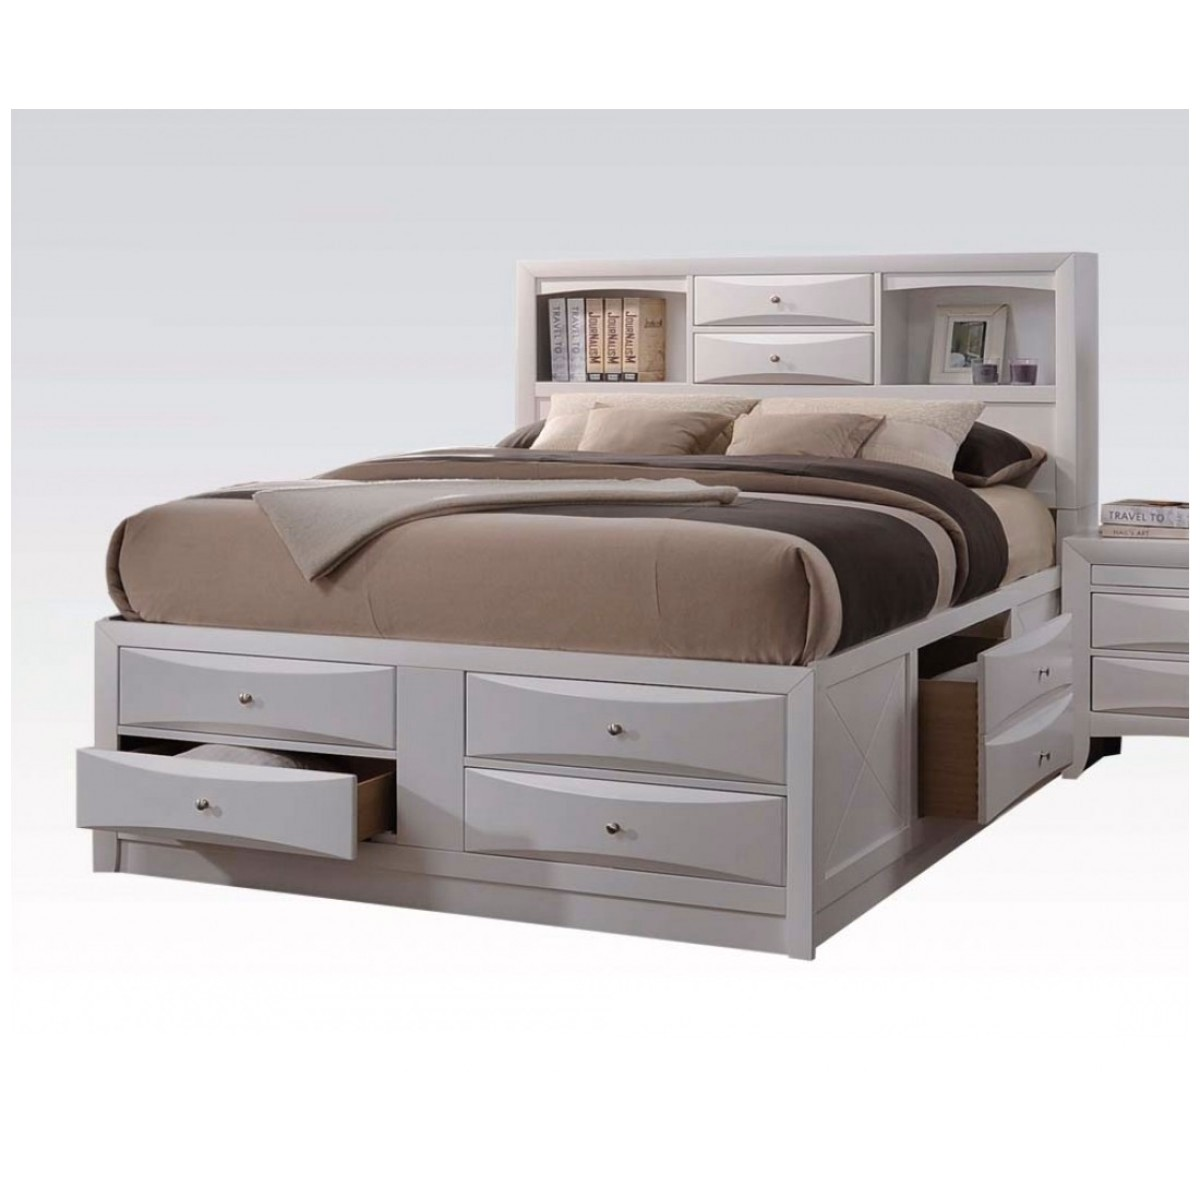 limerick transitional 6 drawer storage king platform bed in white finish. Black Bedroom Furniture Sets. Home Design Ideas